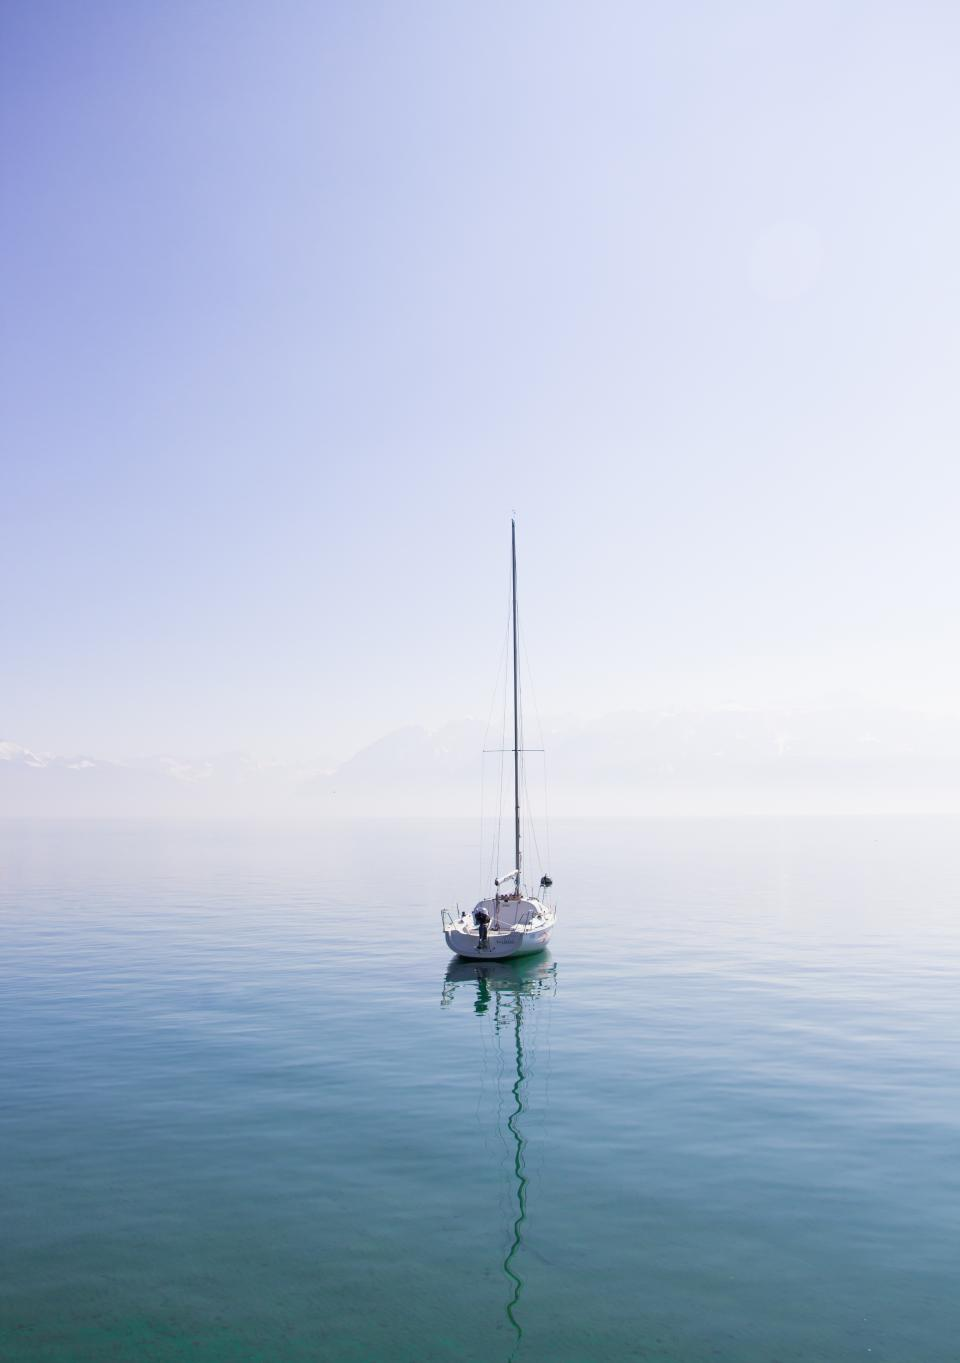 sea ocean blue water nature reflection ship boat transportation